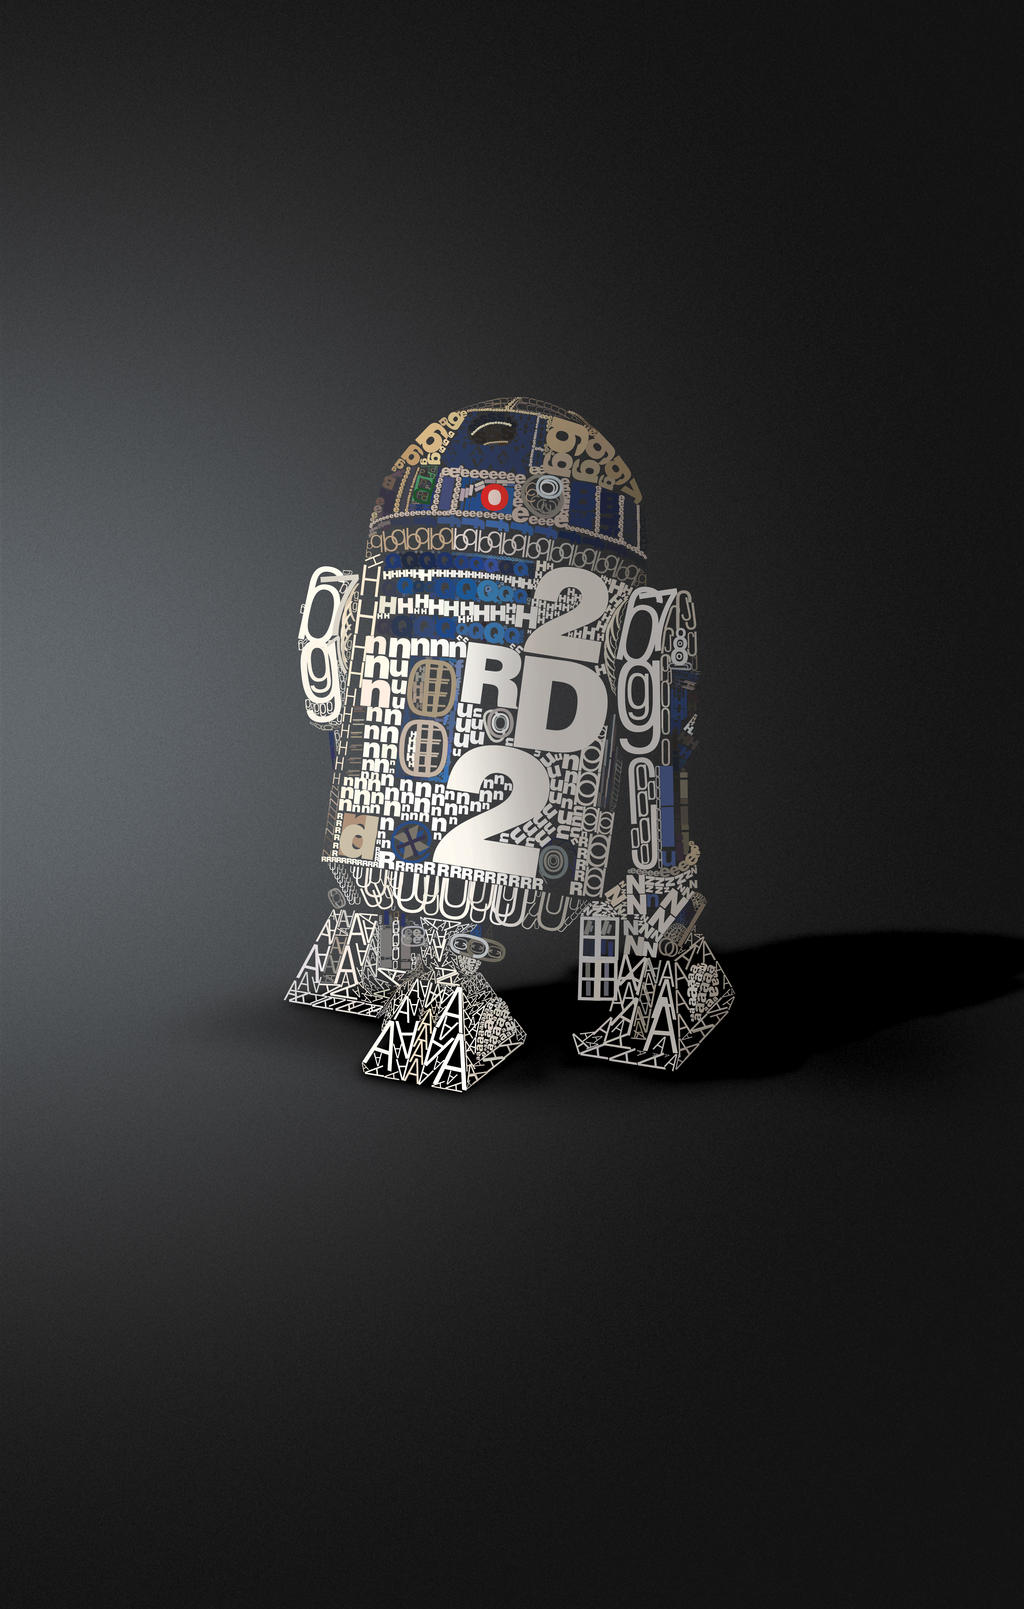 R2D2 in Helvetica by DavidBenoliel